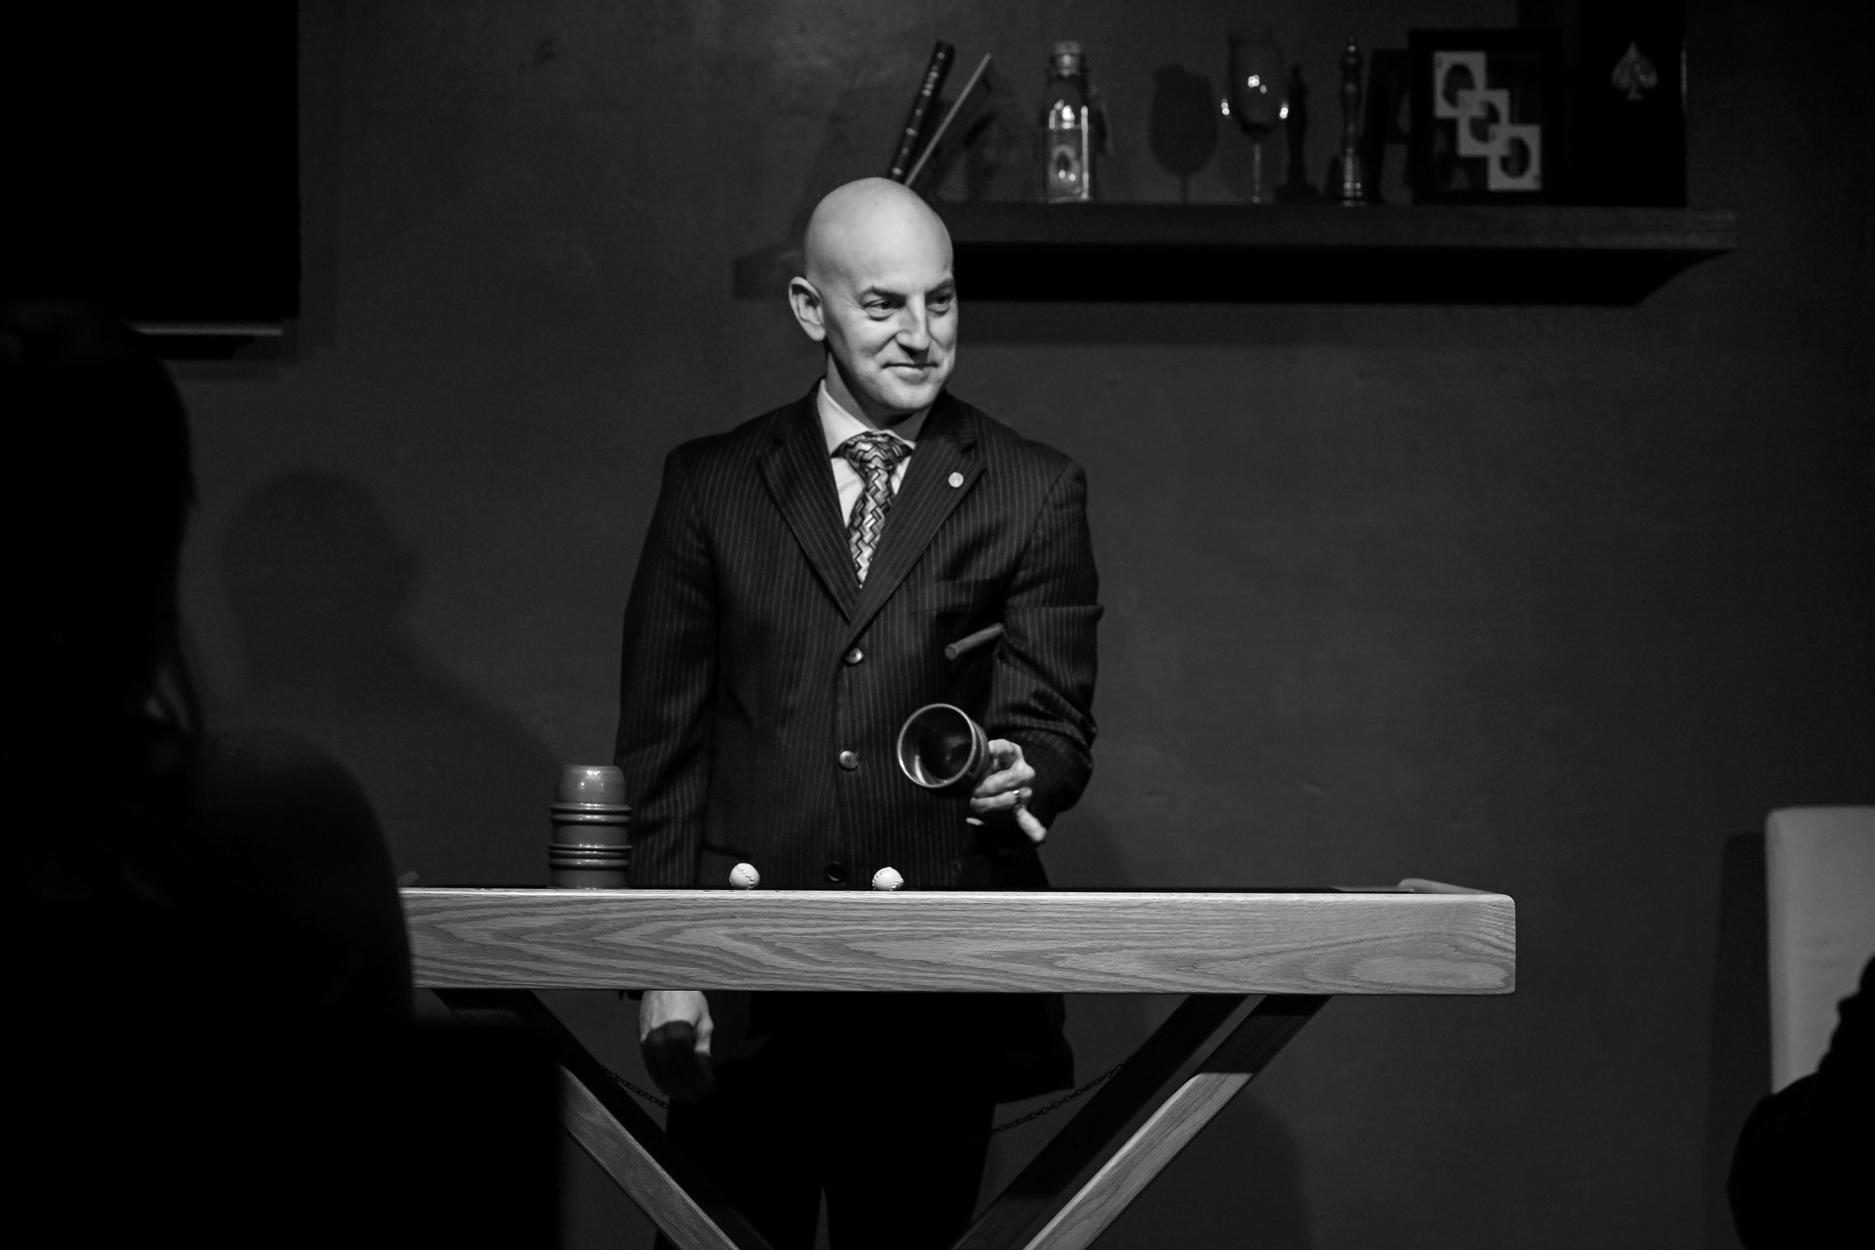 Magic show at Red Spade Theater